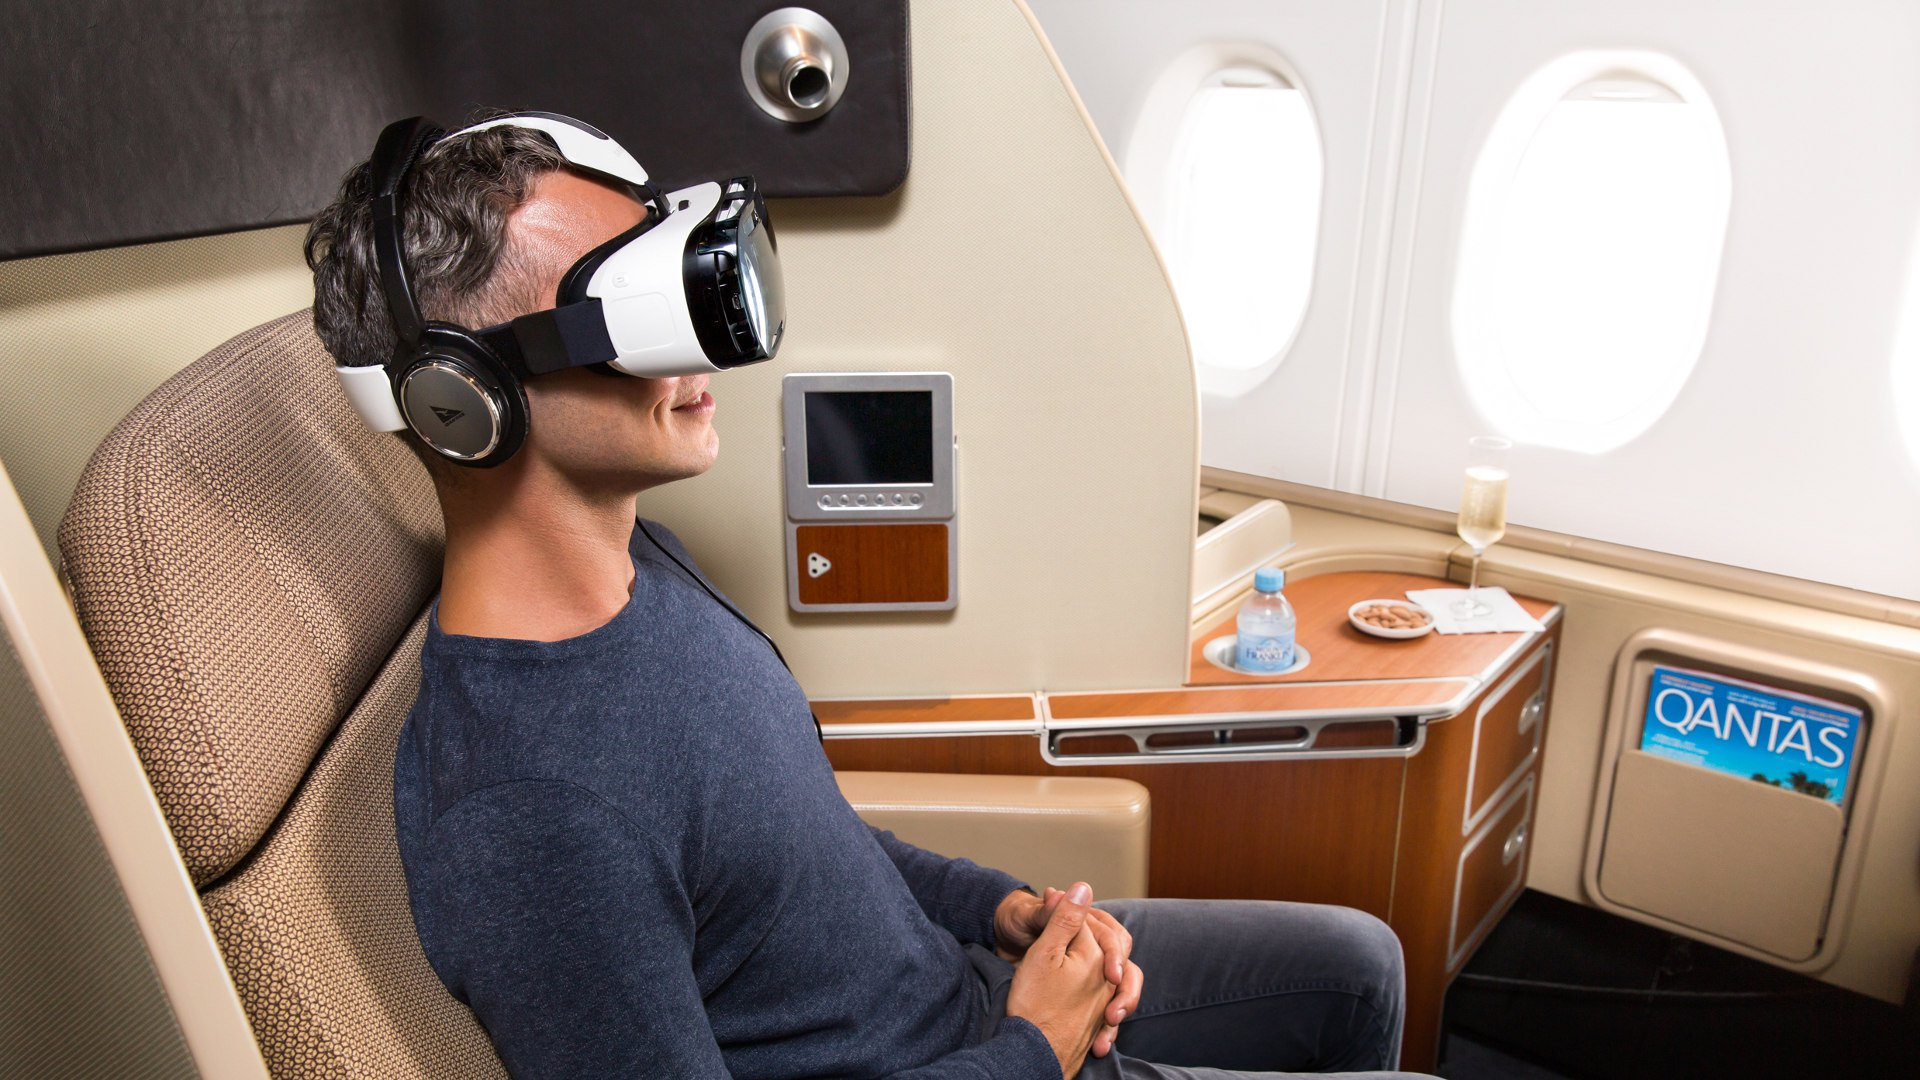 Quantas Airlines To Use Gear VR For In-Flight Entertainment